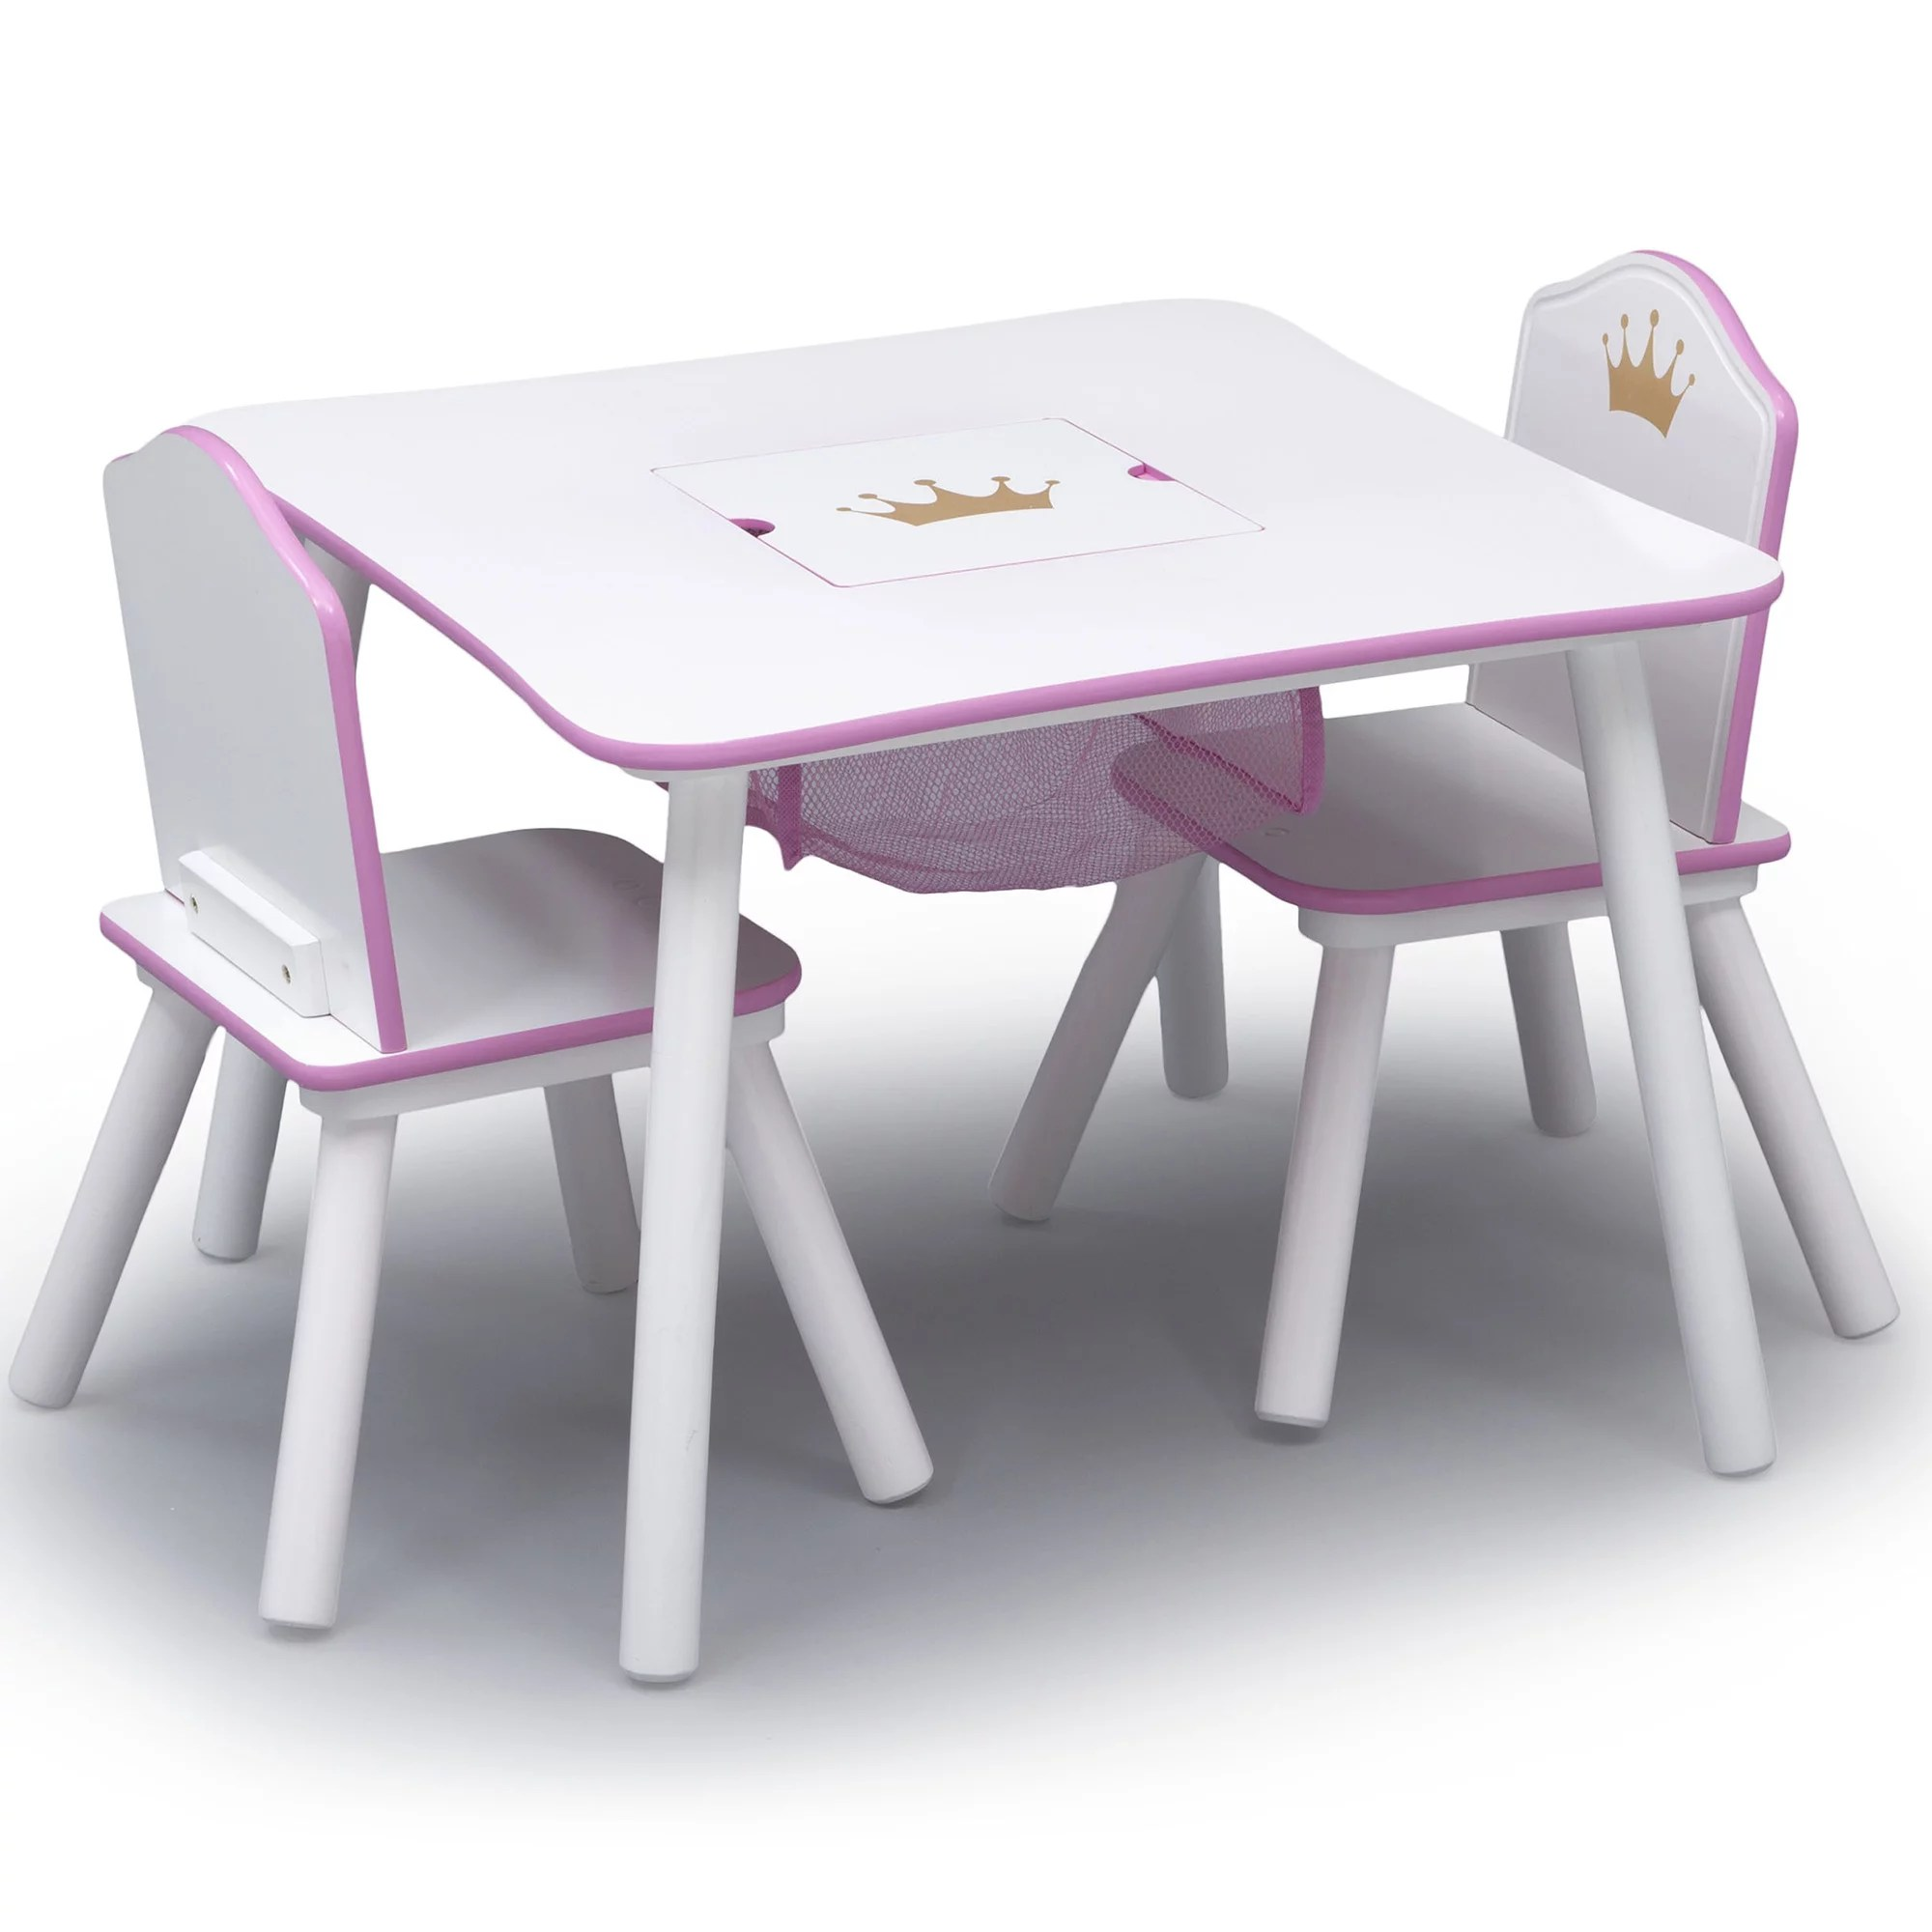 Delta Children Chair Details About Delta Children Princess Crown Kids Table And Chair Set With Storage White Pink